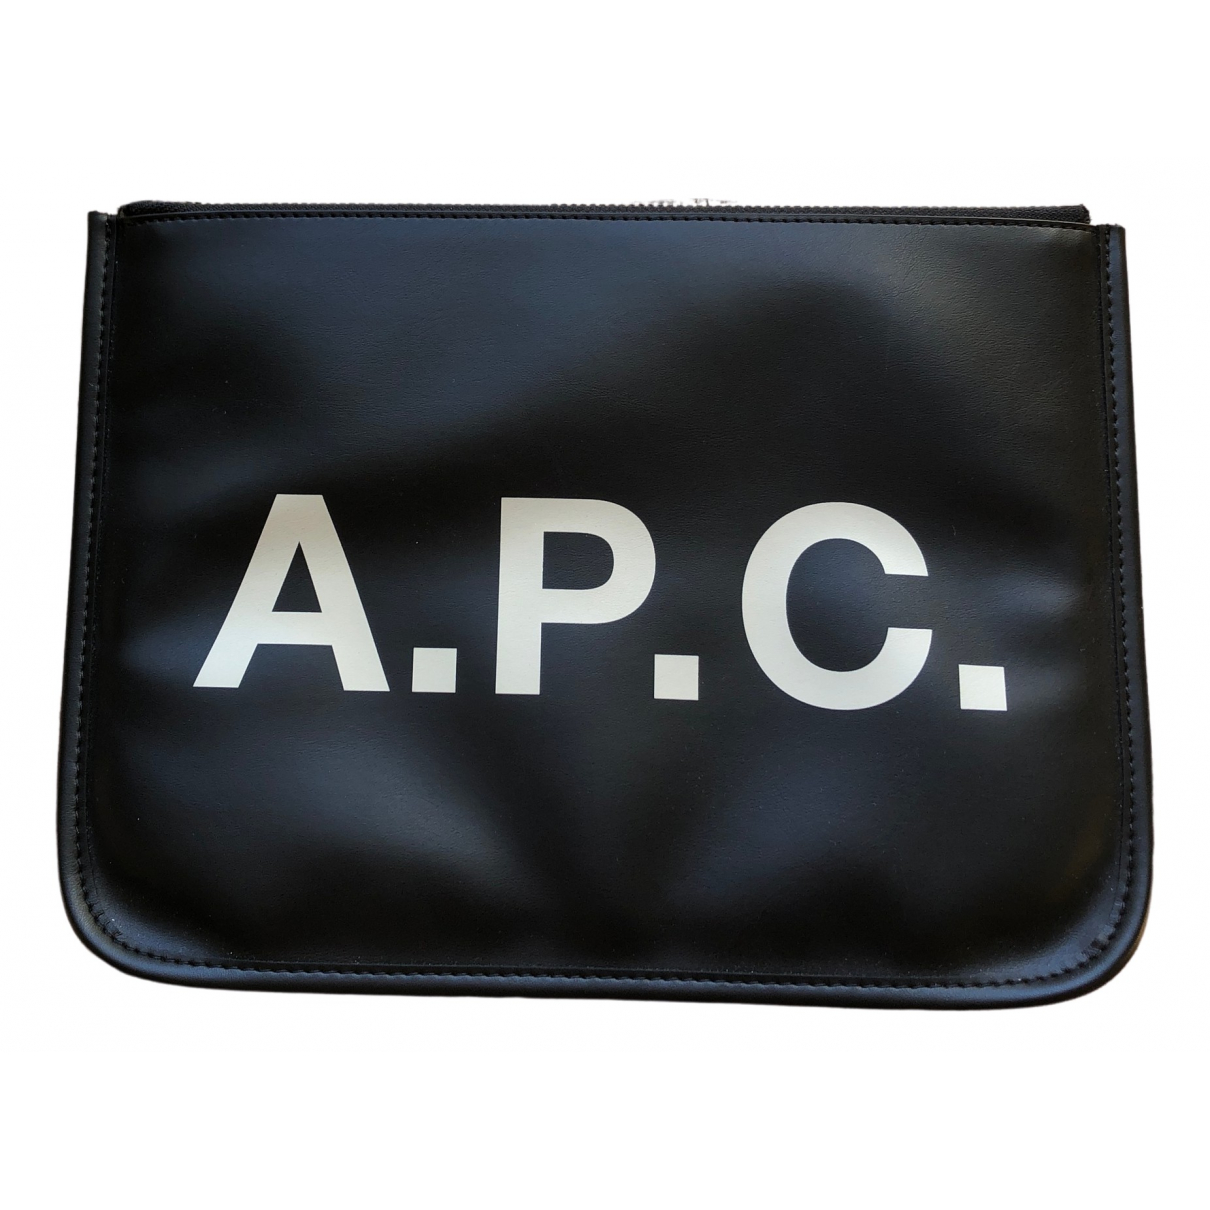 Apc \N Black Leather Clutch bag for Women \N